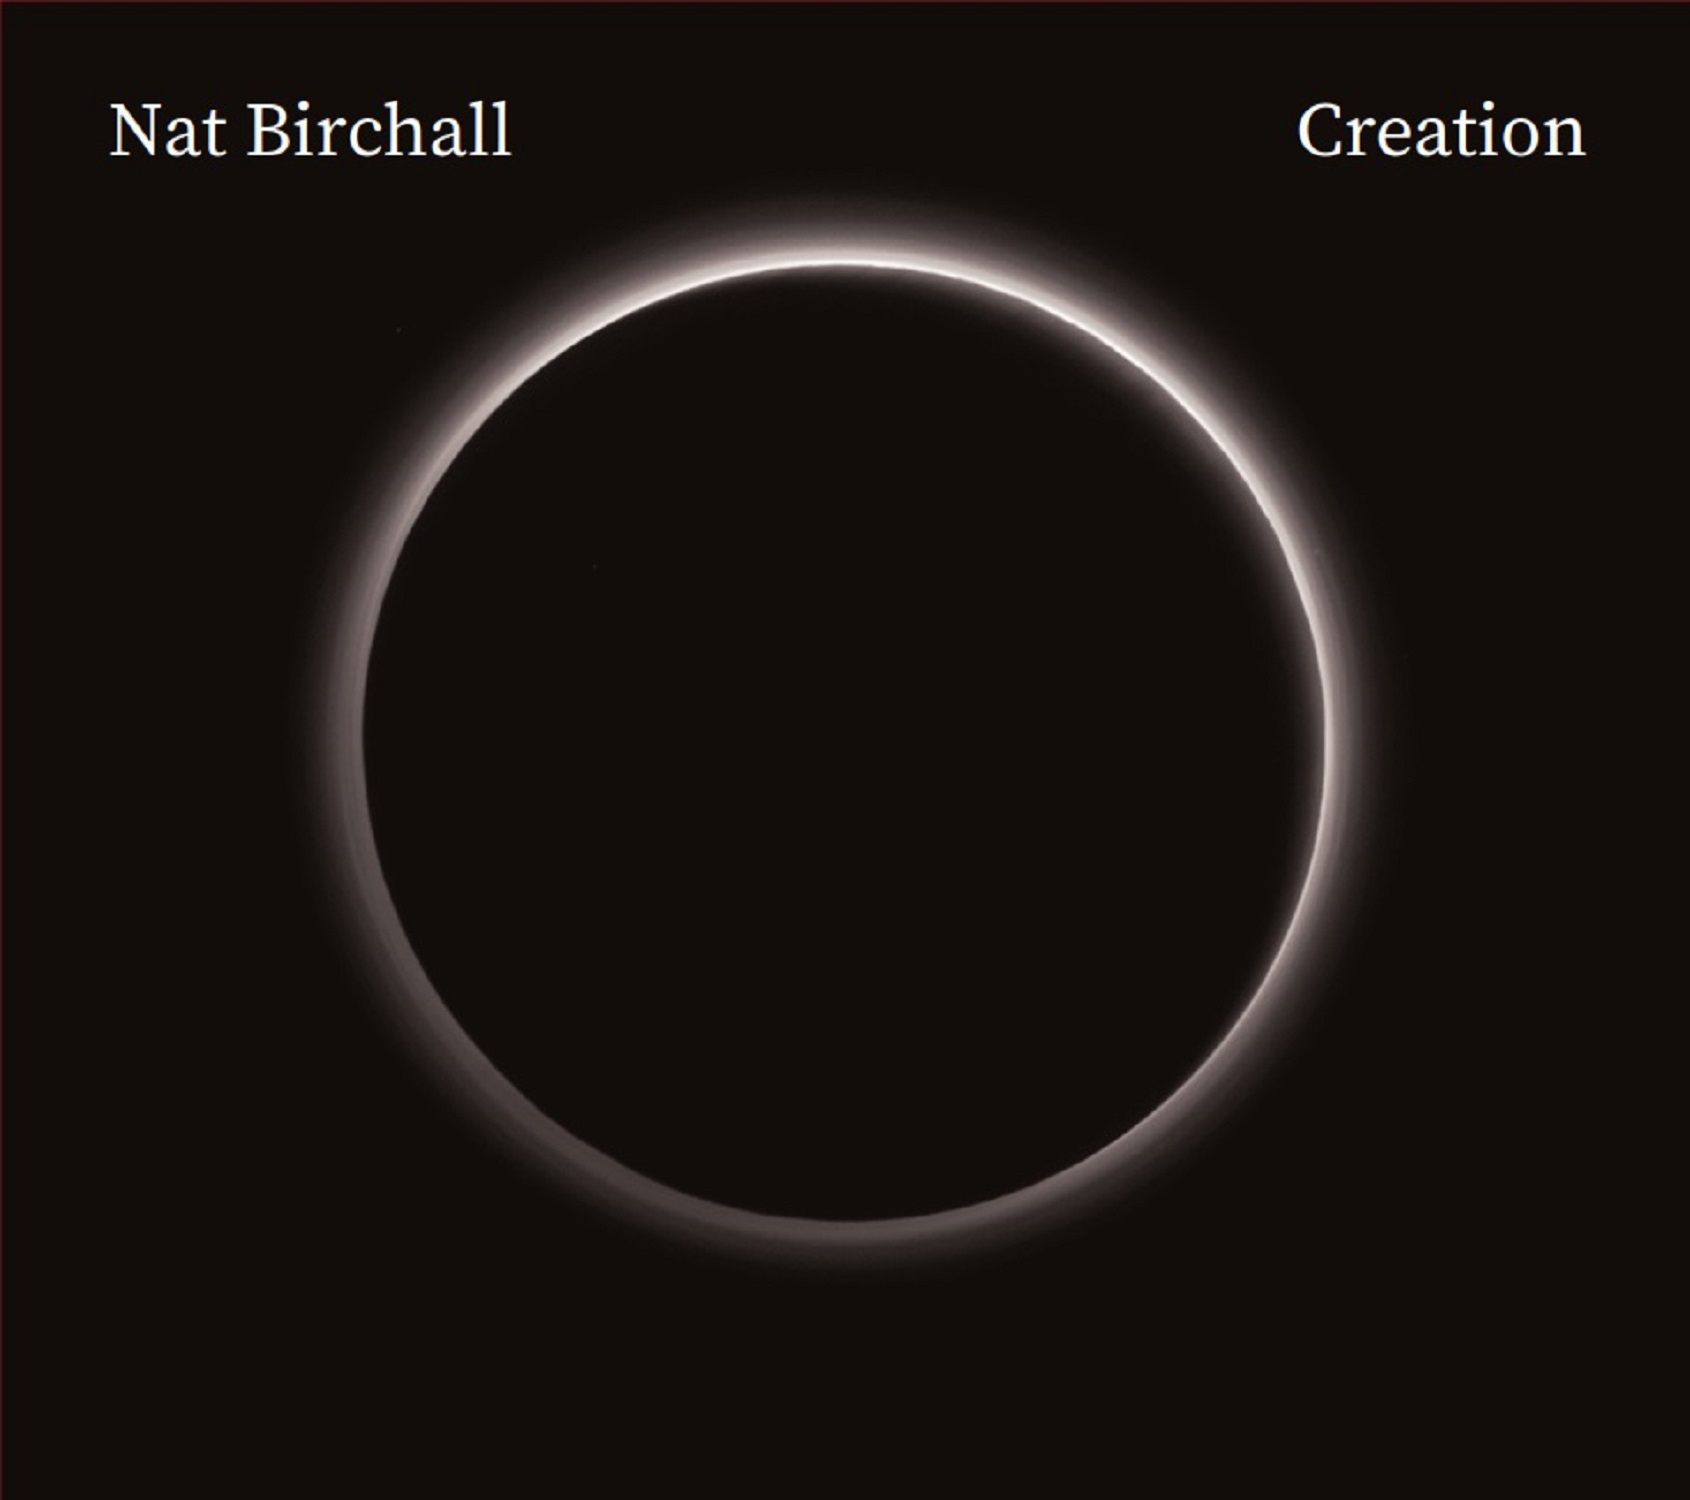 natbirchallcreationhighres (1)